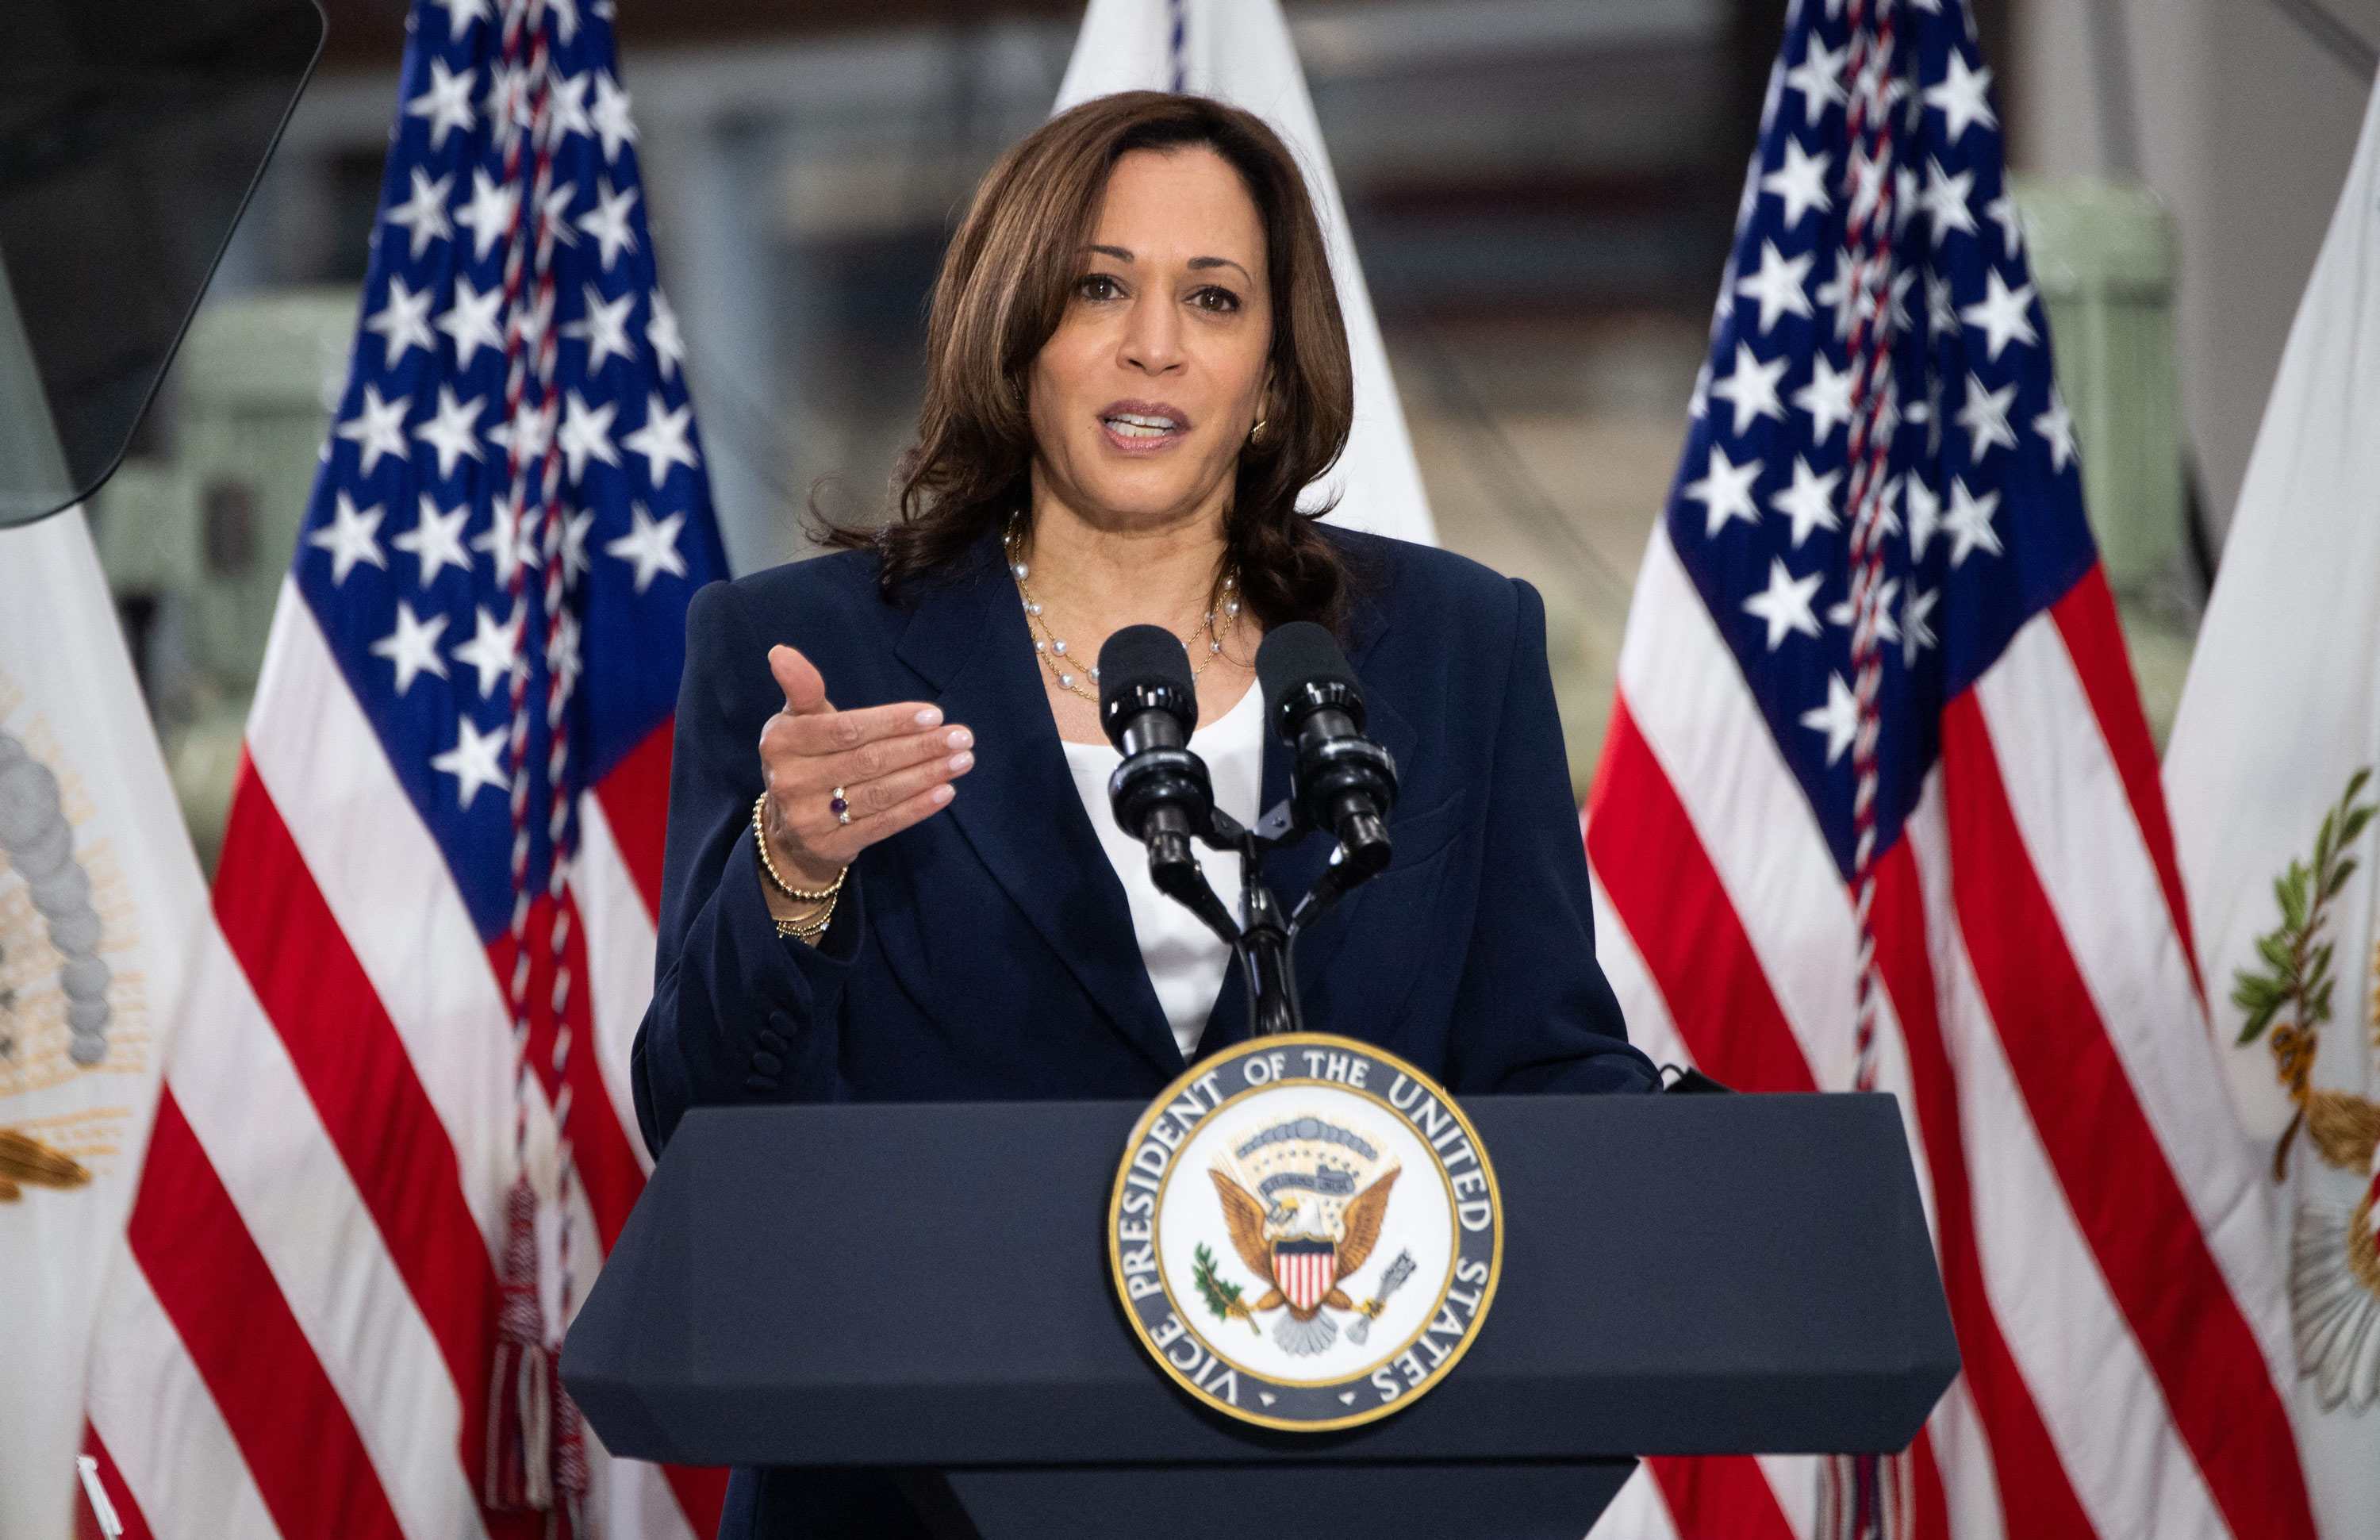 Harris pitches American Jobs Plan during first extended economic speech since becoming VP